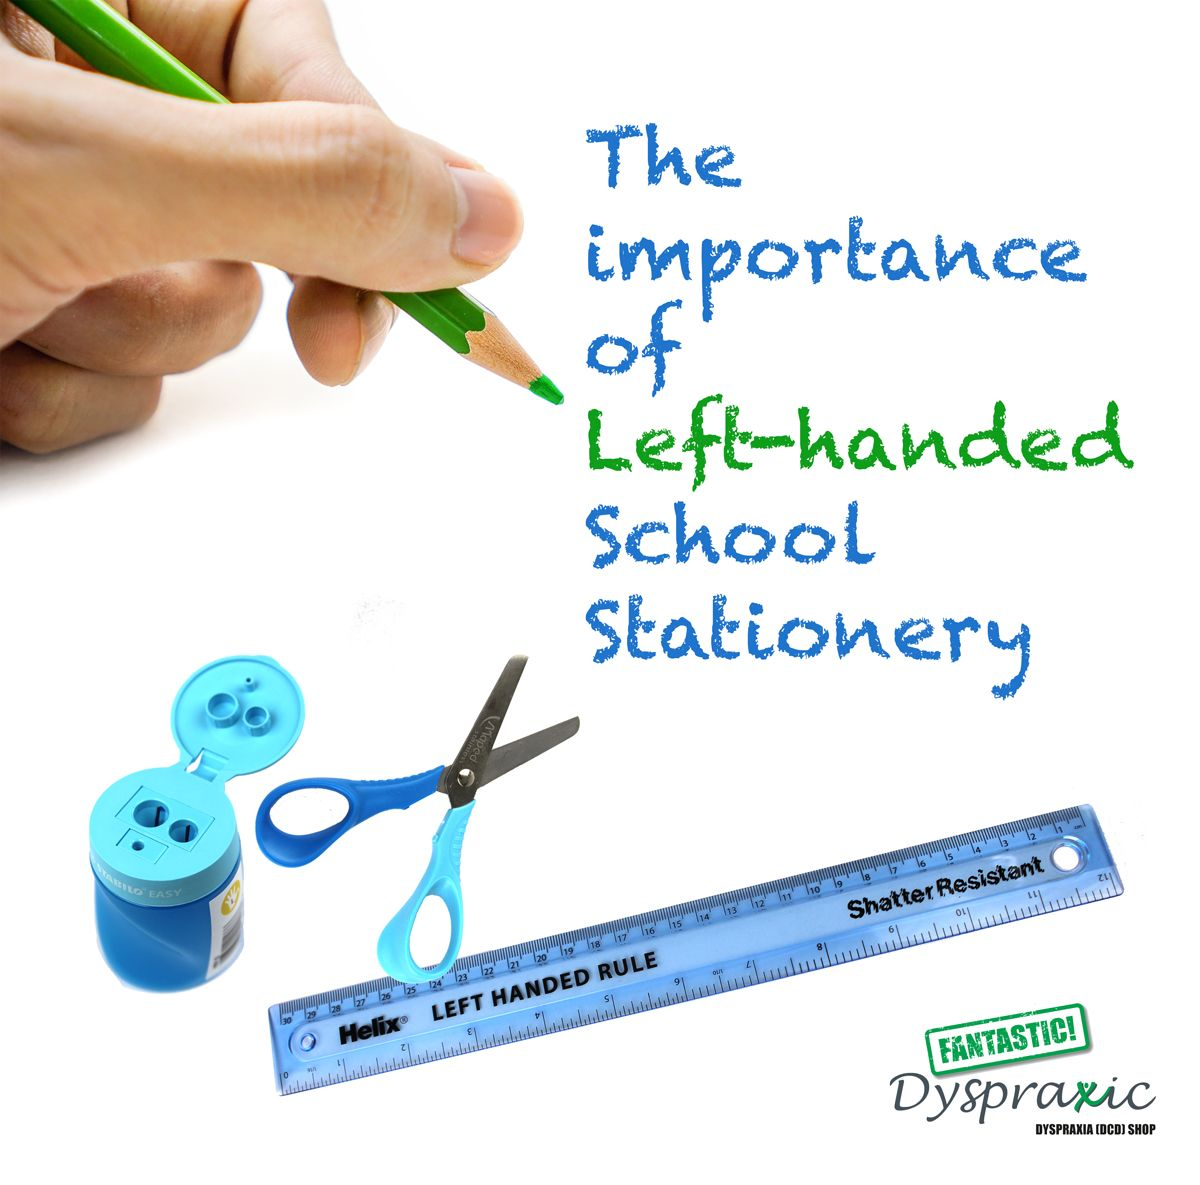 The Importance Of Providing Left Handed Stationery For